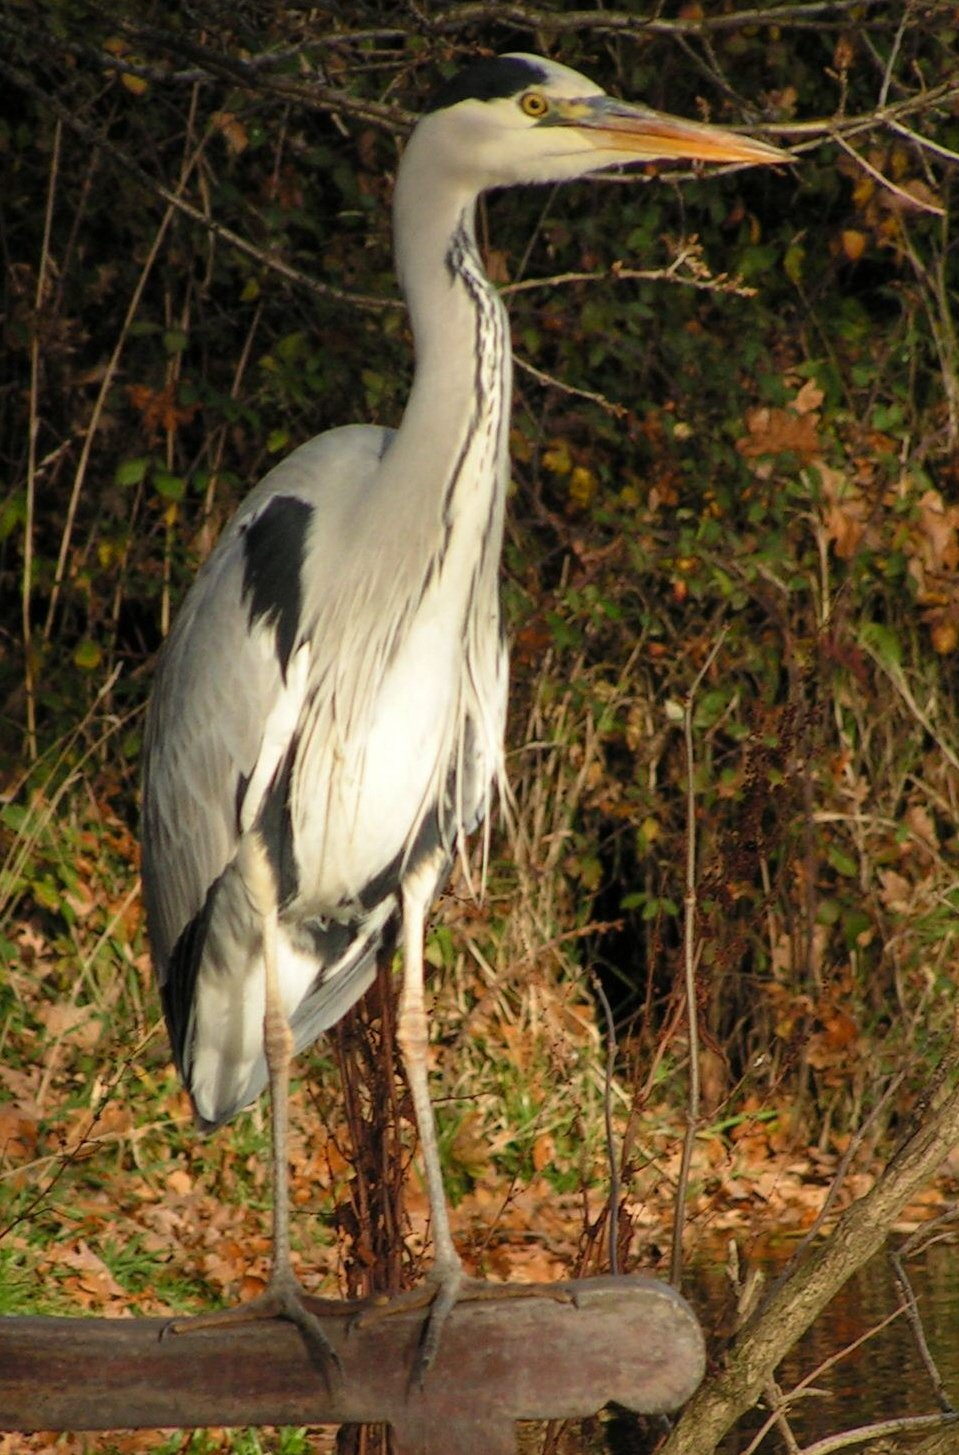 Heron at Hanley Swan pond